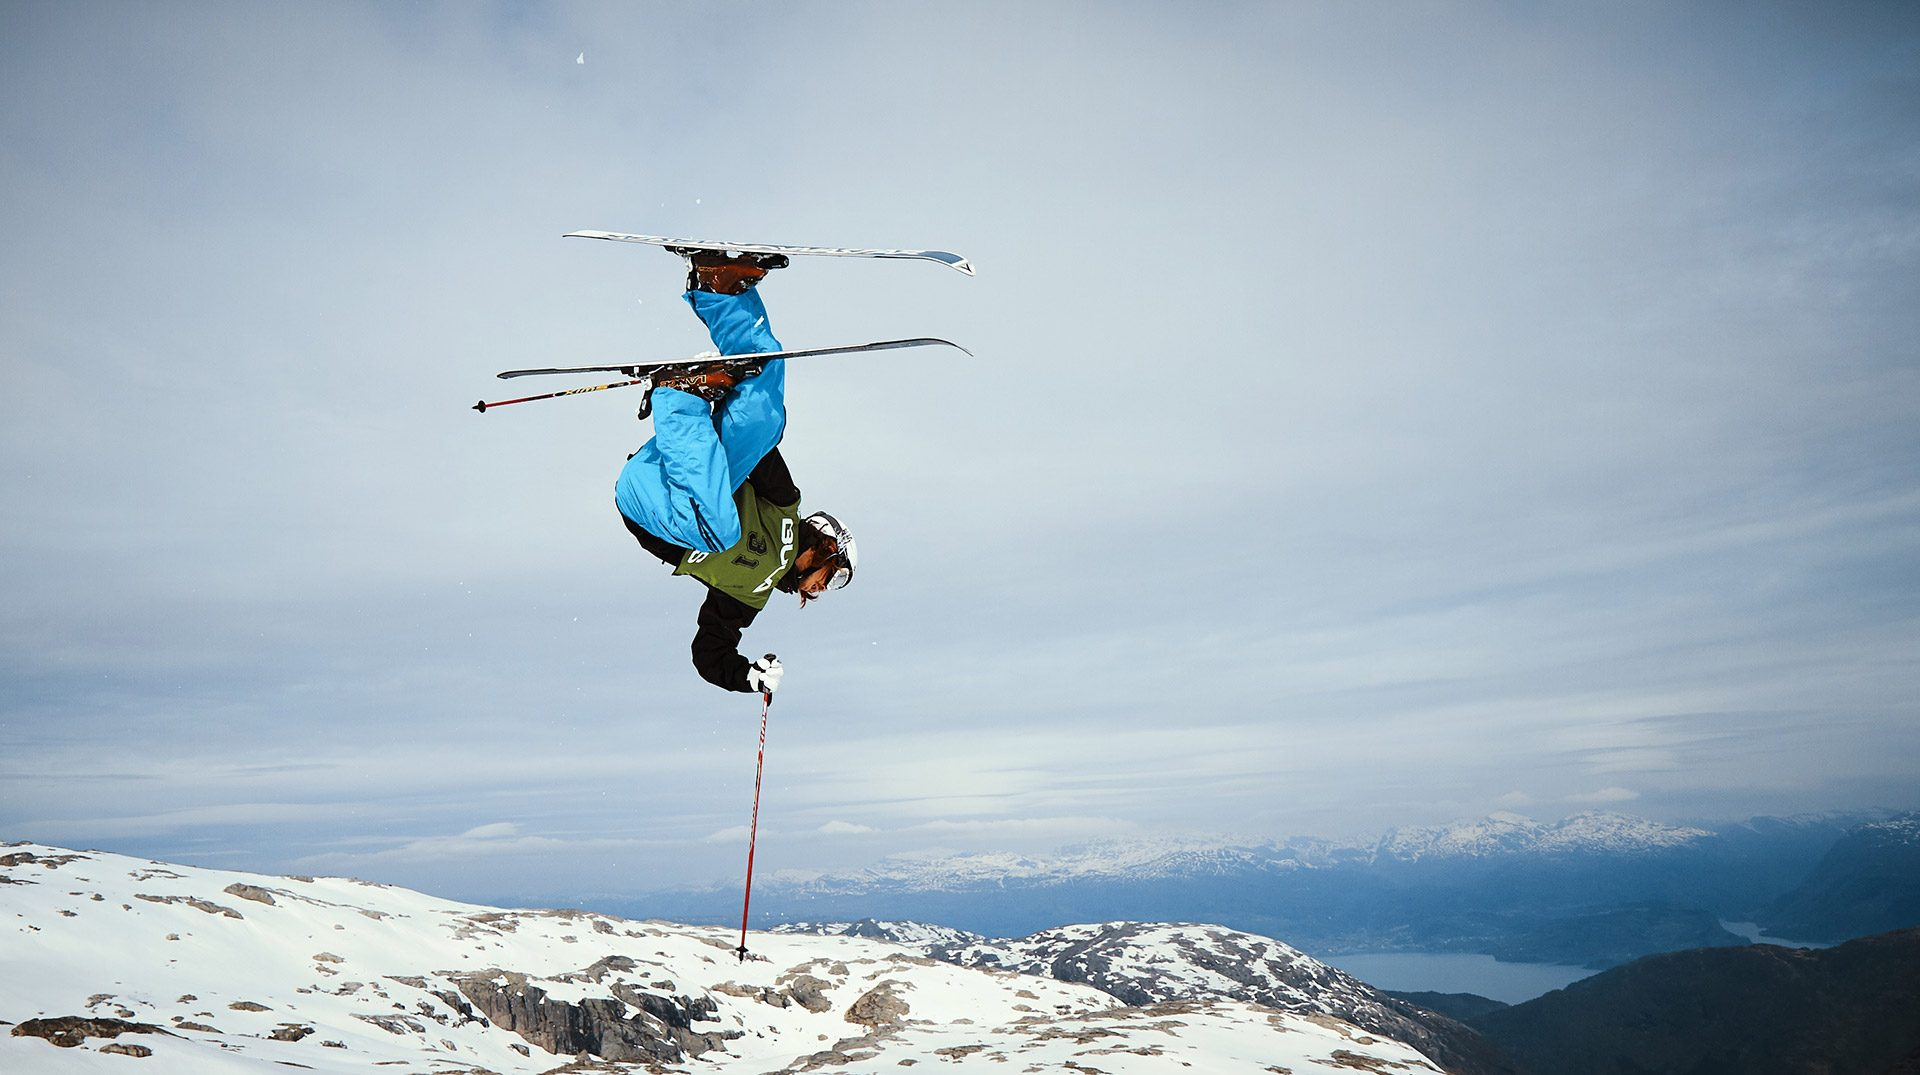 You Can Get Paid to Travel the World to Ski All Winter